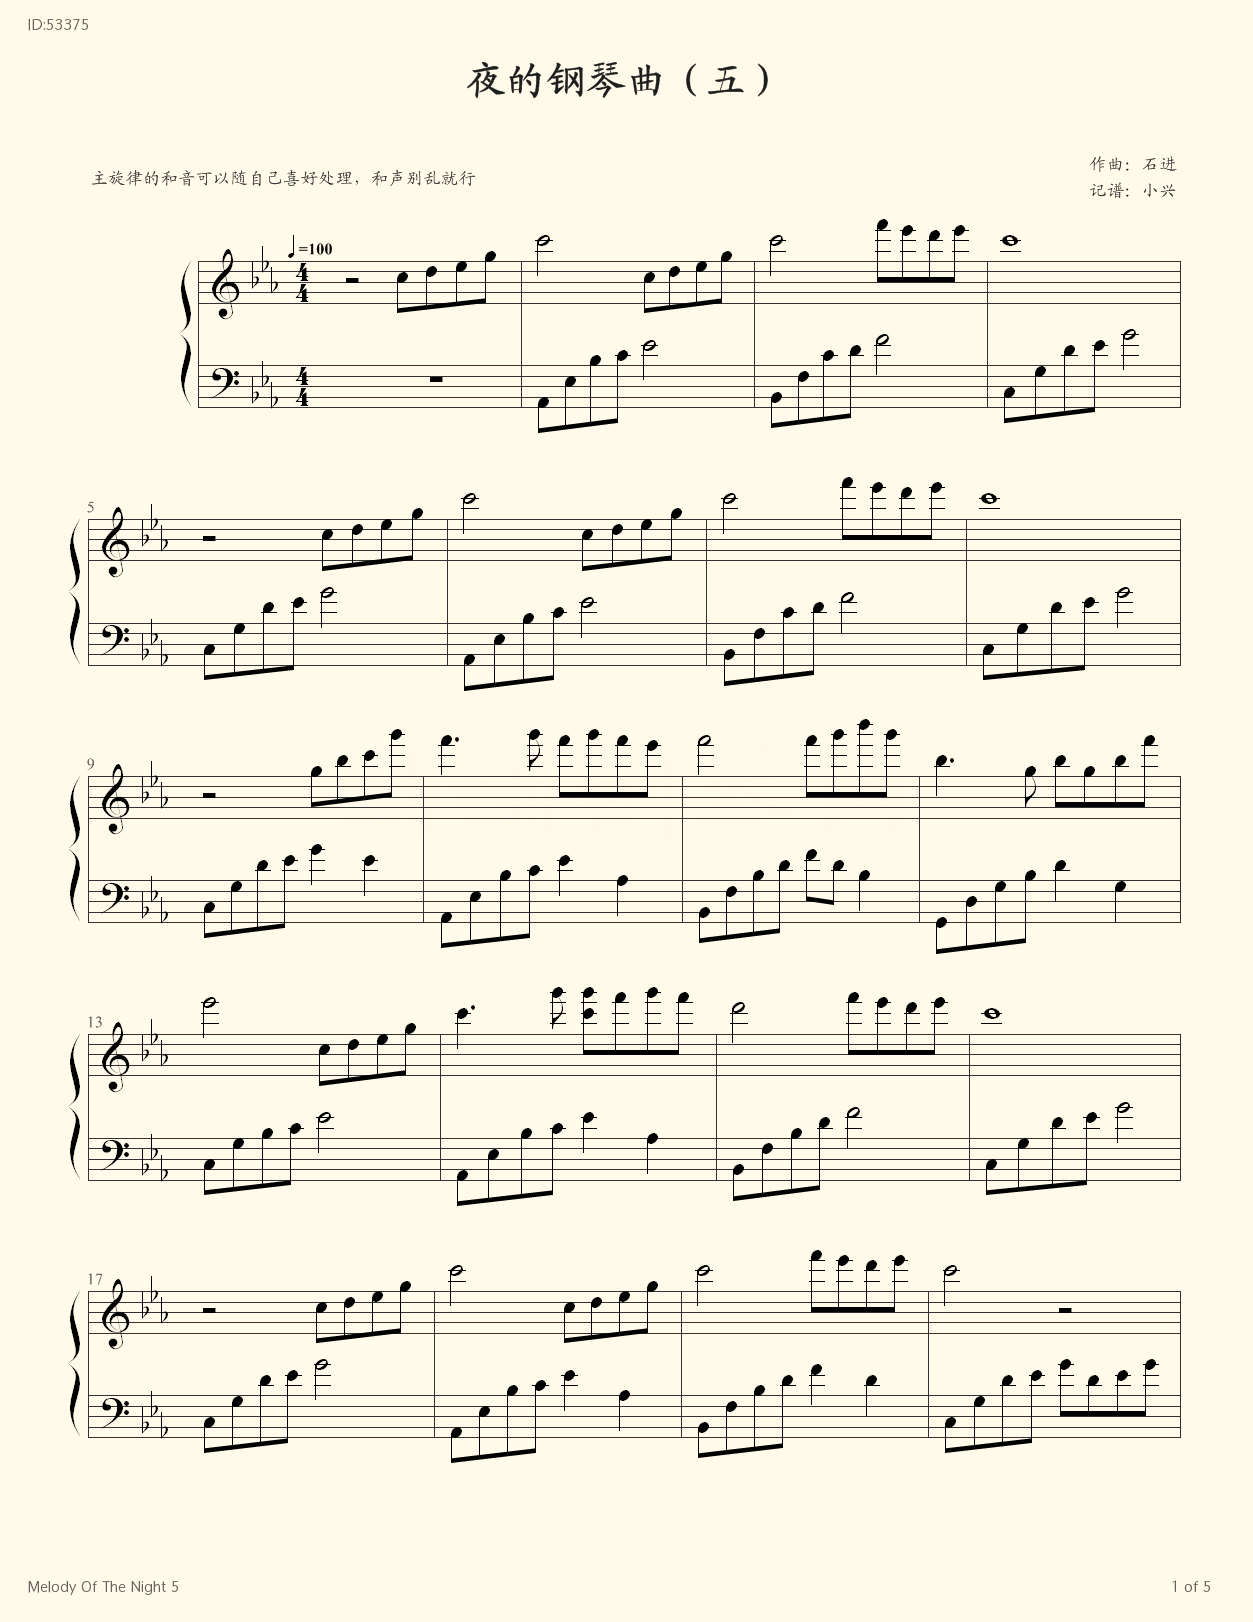 Melody Of The Night 5 - Shi Jin - first page